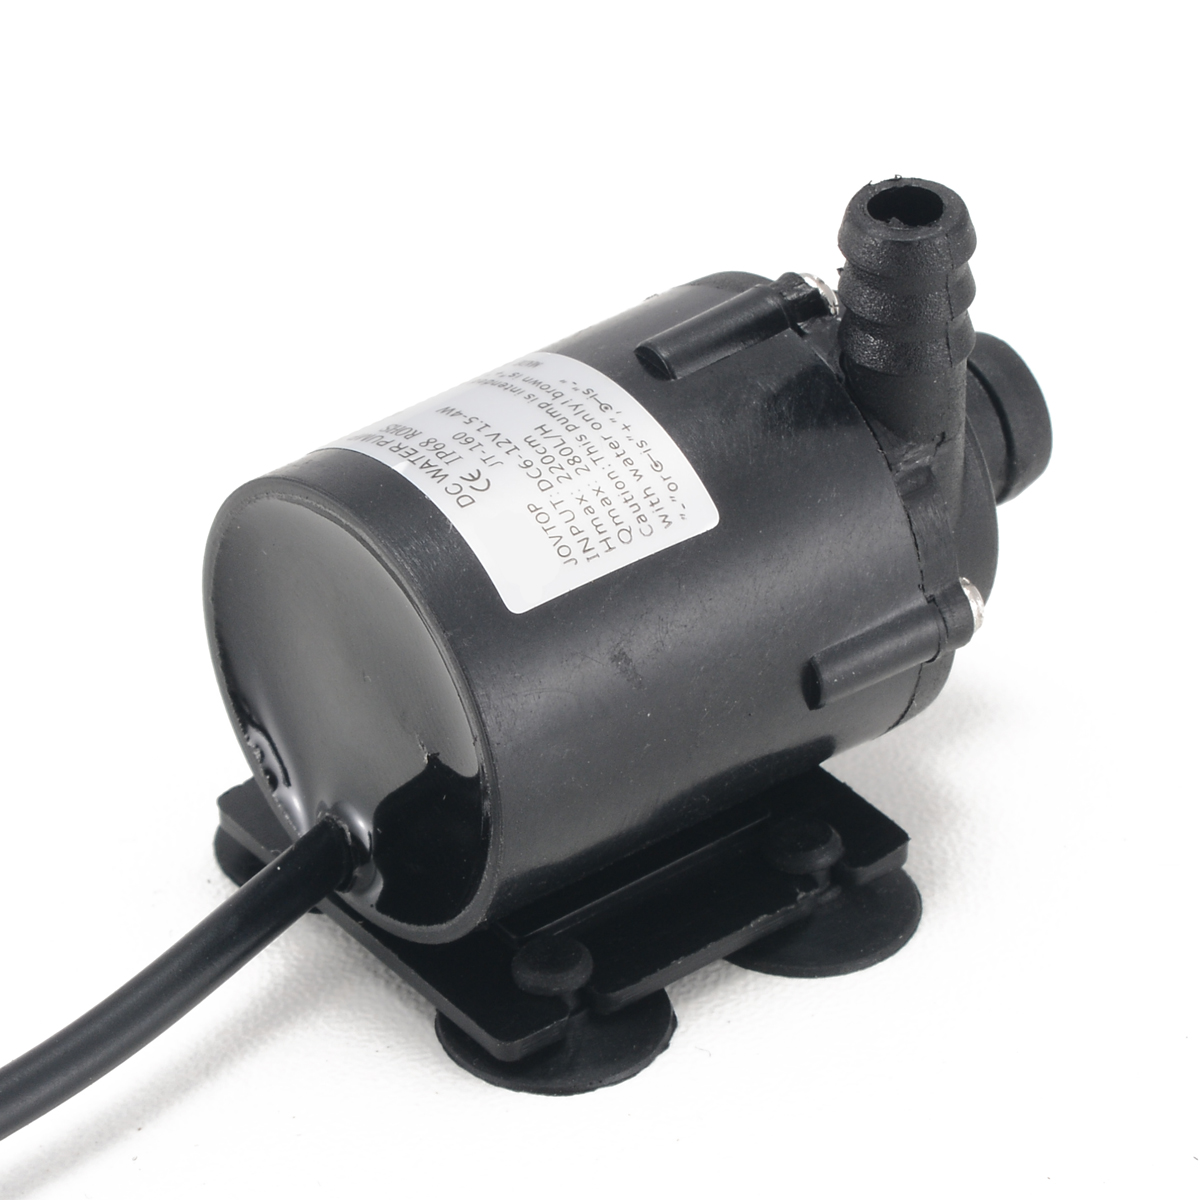 Miniature Black Submersible Water Pump 280L/H 12V DC Brushless Small Submersible Motor Water Cooling Pump Garden Pond цена